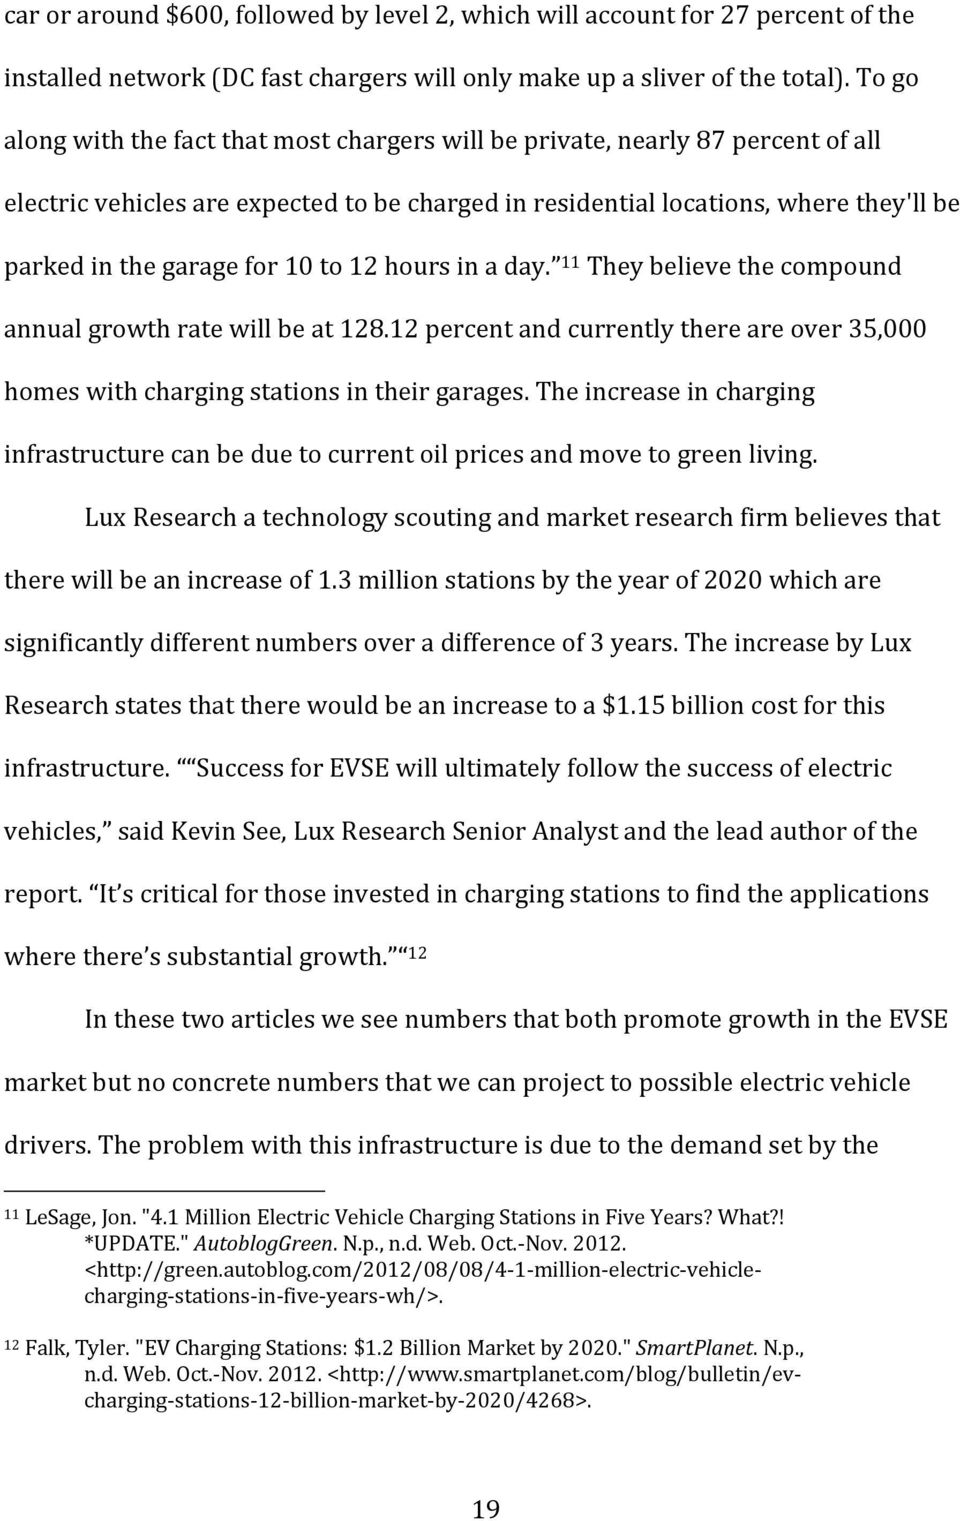 10 to 12 hours in a day. 11 They believe the compound annual growth rate will be at 128.12 percent and currently there are over 35,000 homes with charging stations in their garages.